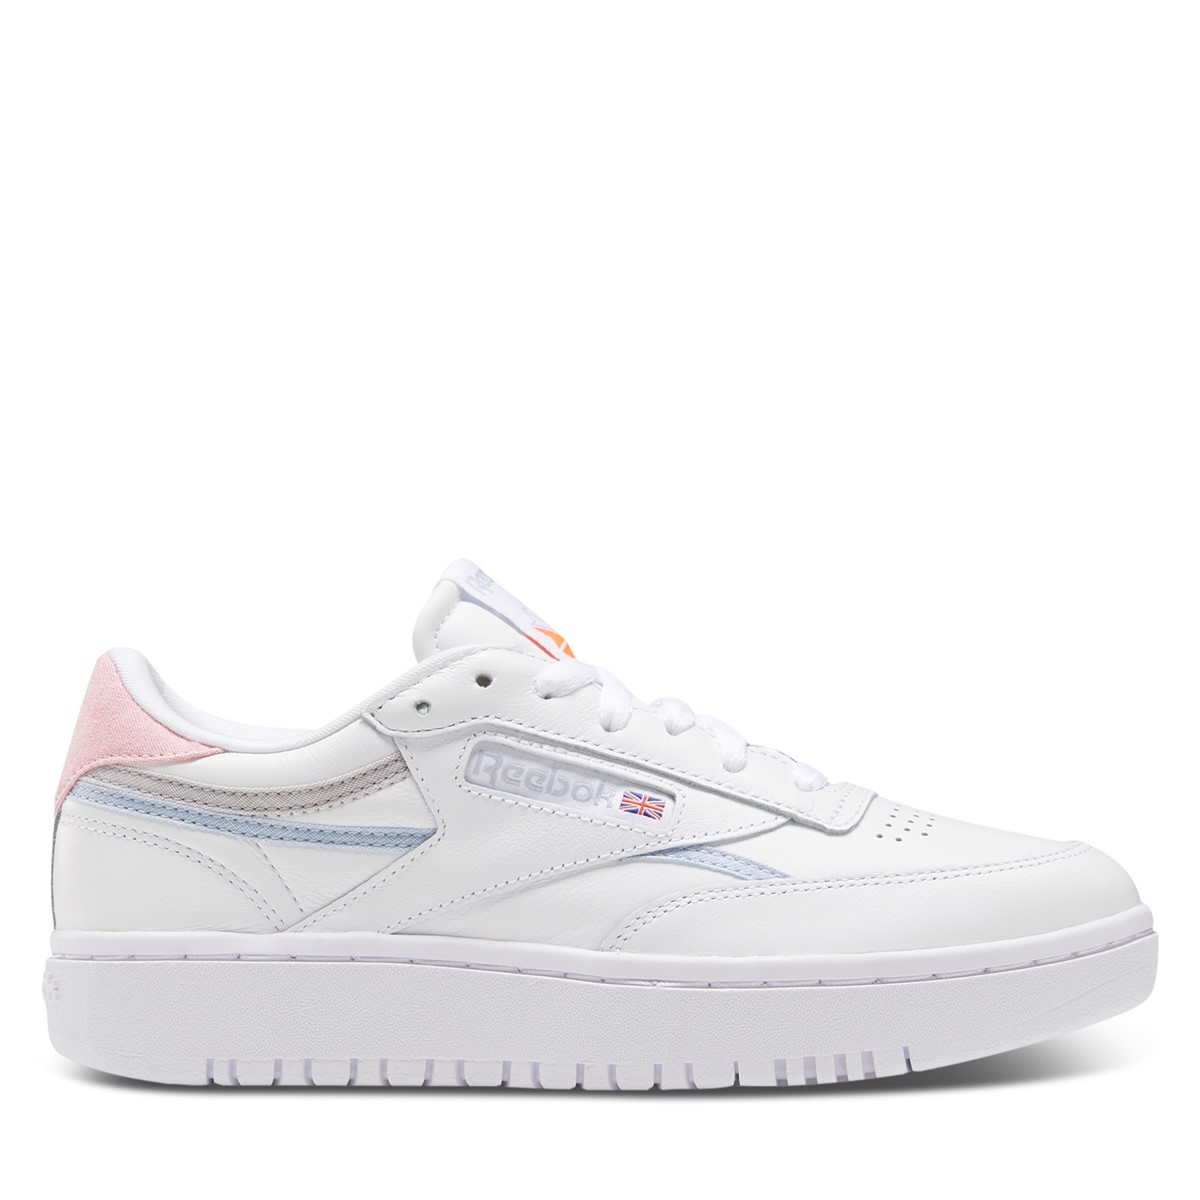 Women's Club C Double Sneakers in White/Lilac